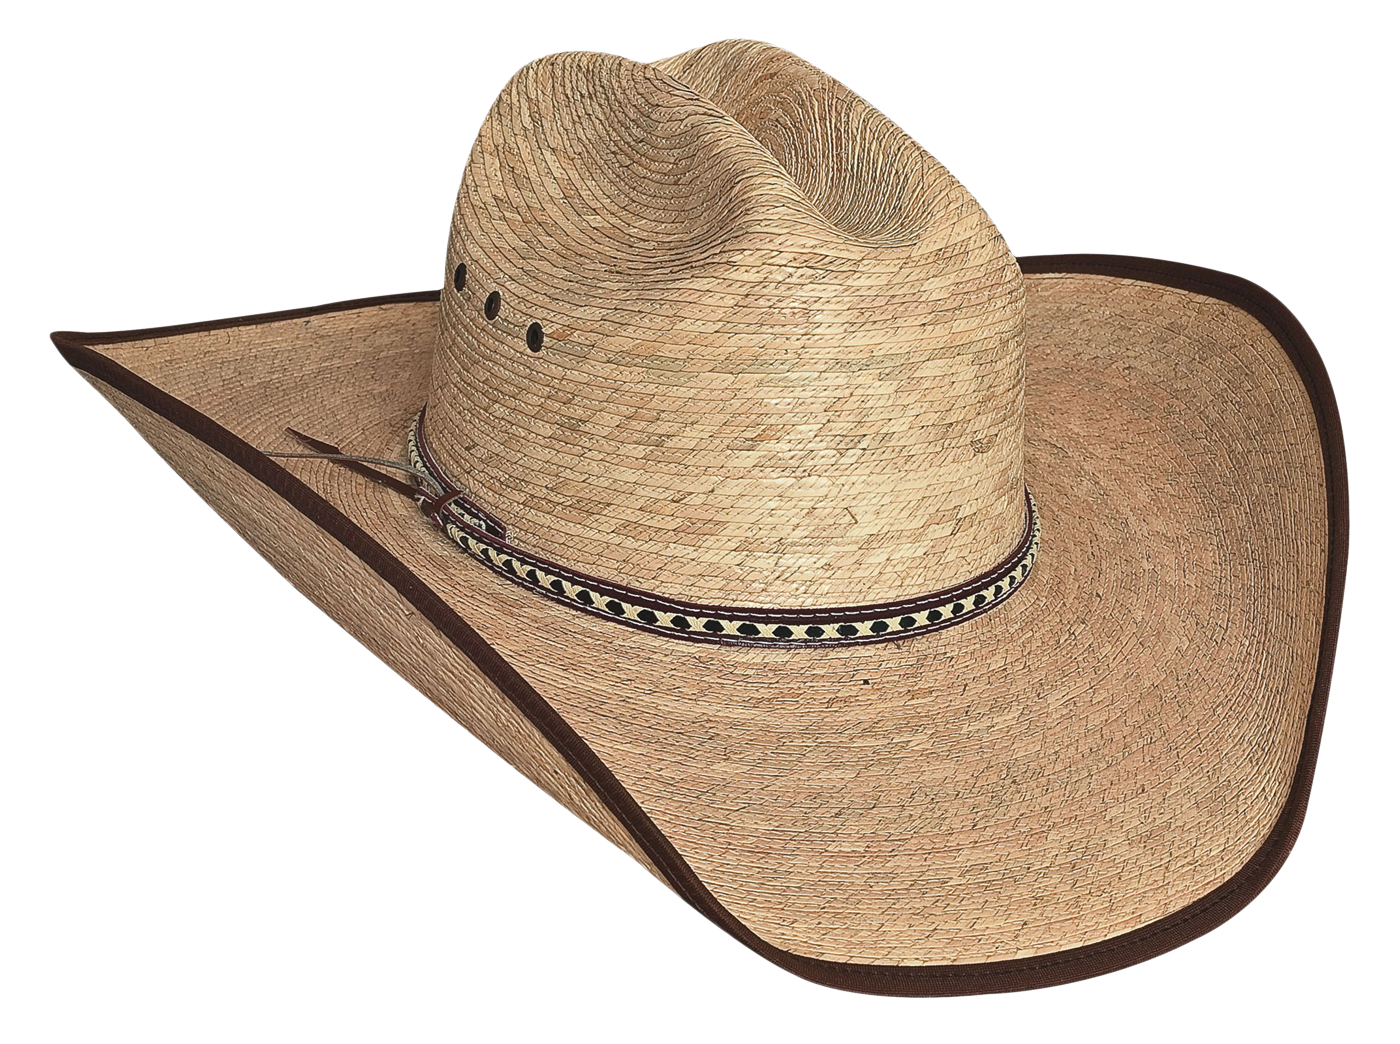 Download Cowboy Hat Png Image For Free Use it in your personal projects or share it as a cool sticker on tumblr, whatsapp, facebook messenger, wechat, twitter or in other messaging apps. download cowboy hat png image for free